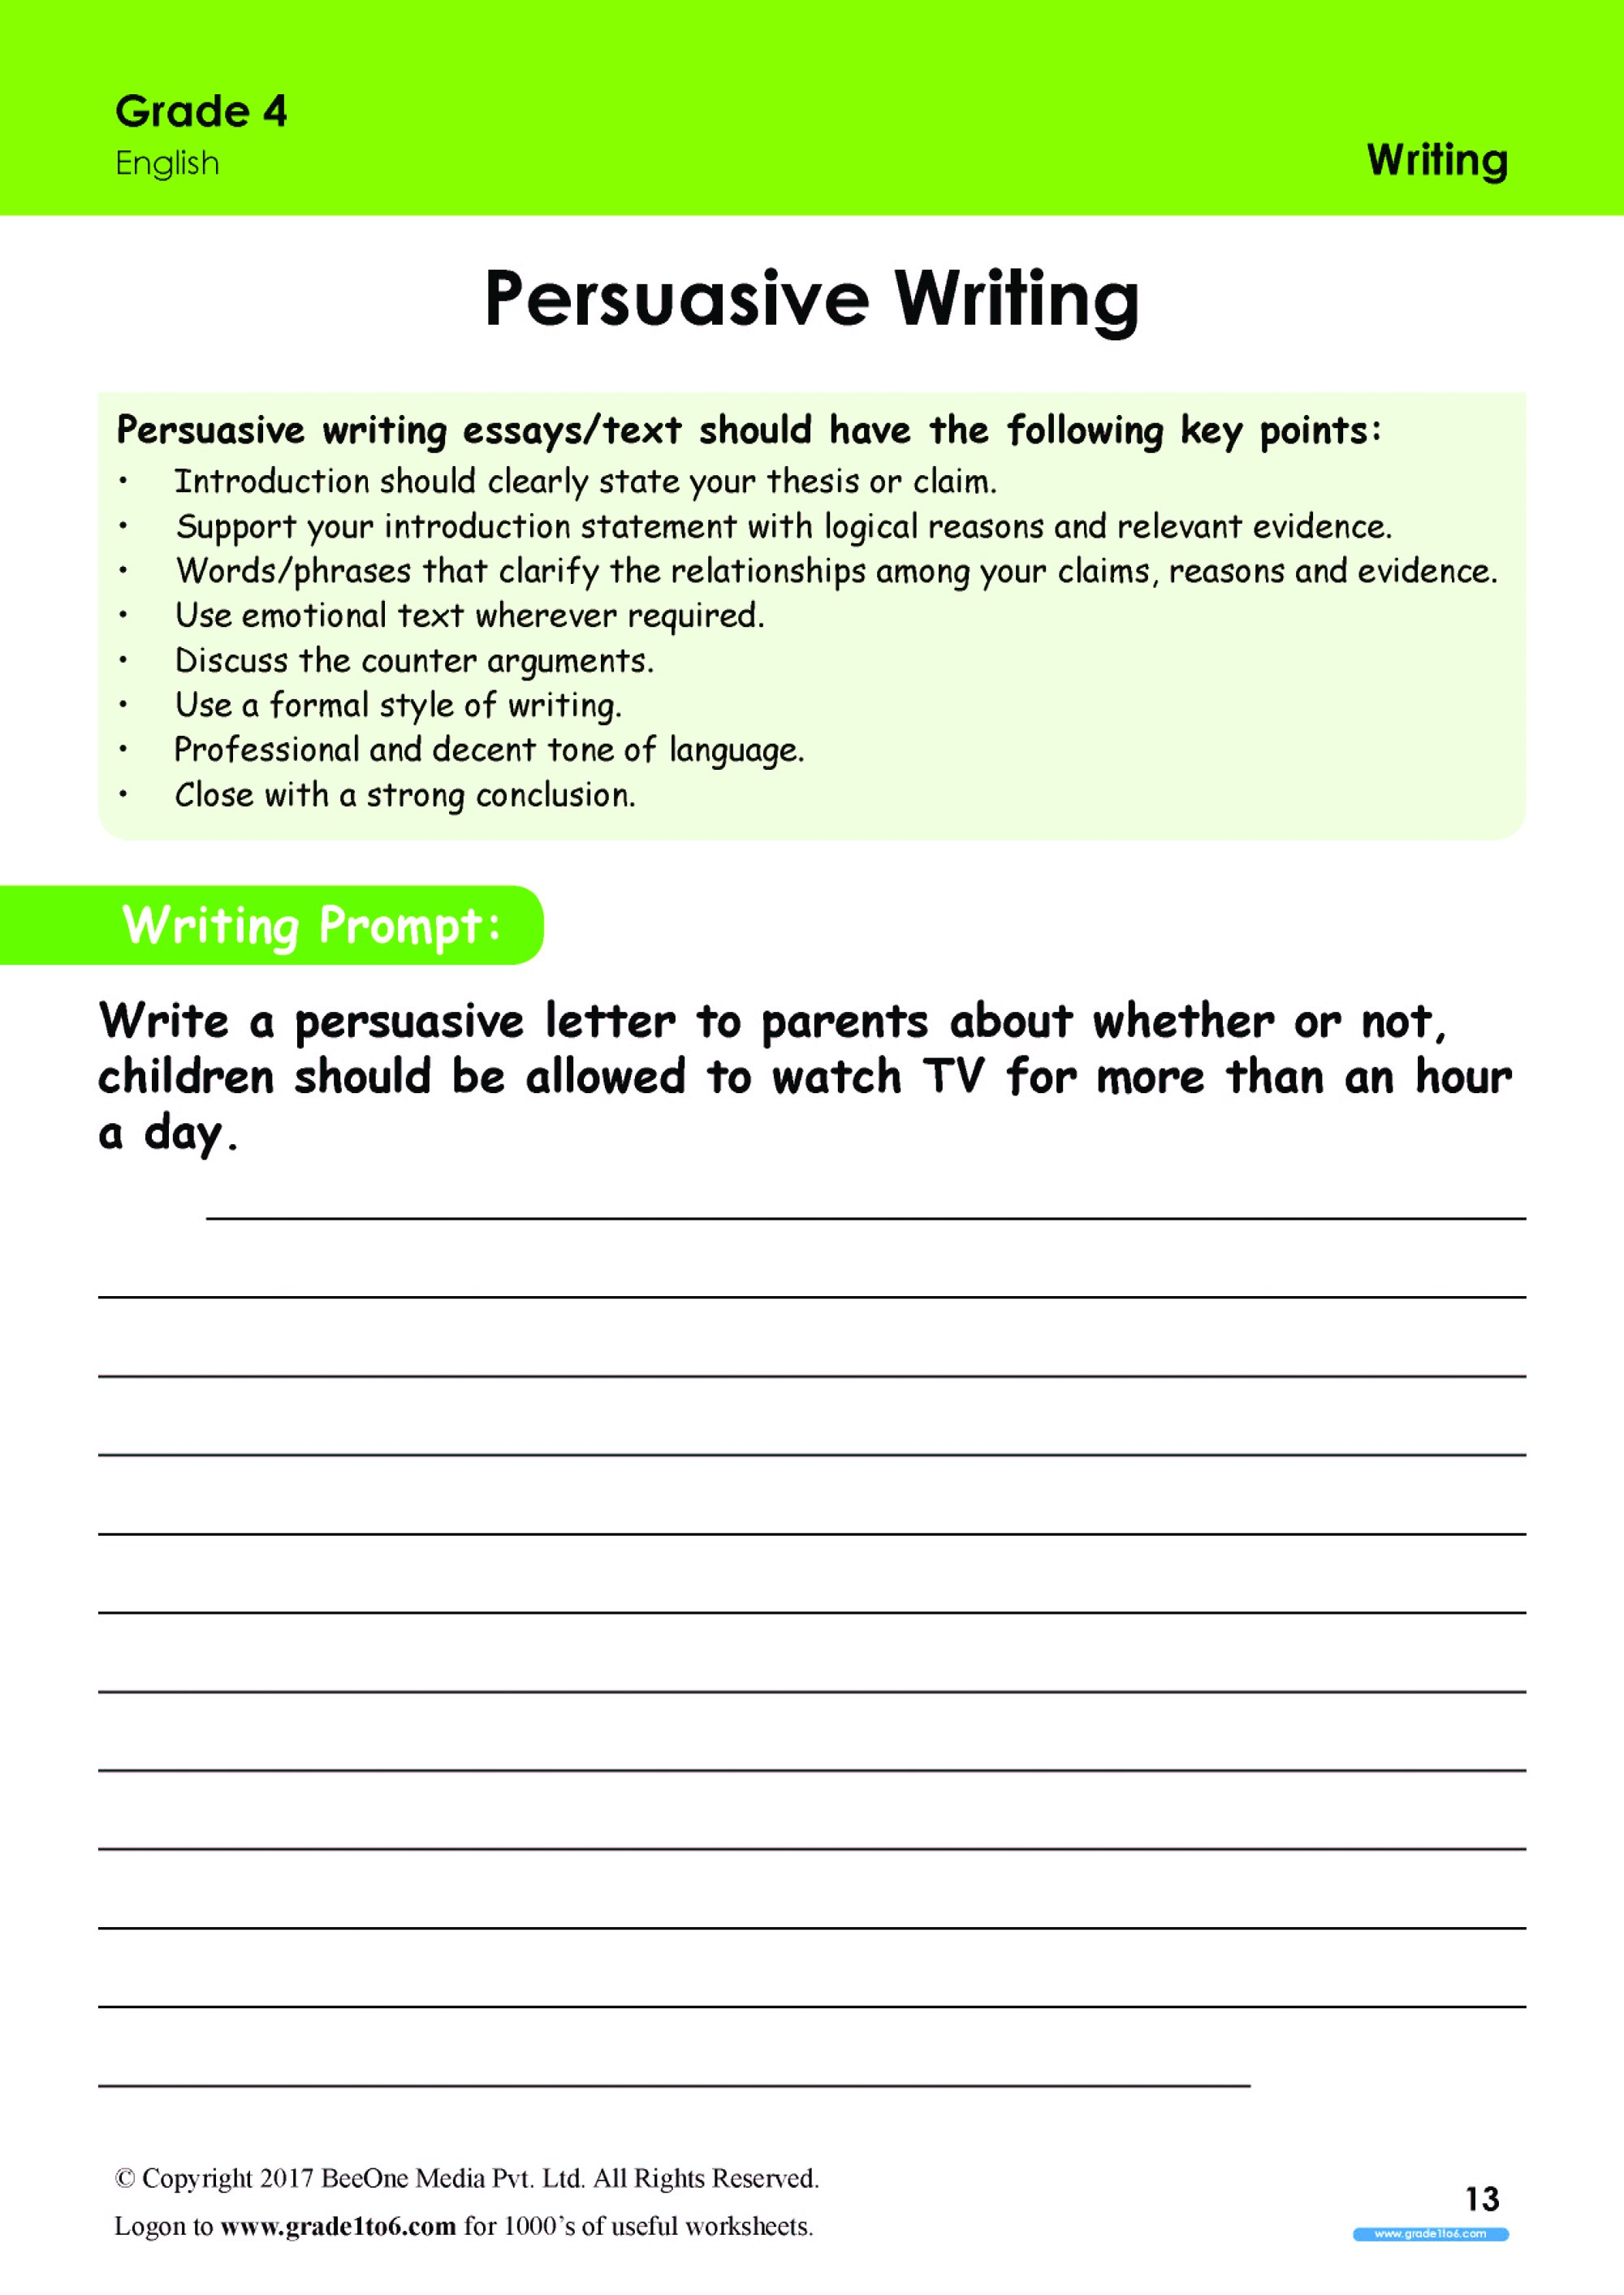 hight resolution of Persuasive Writing worksheets Grade 4 www.grade1to6.com